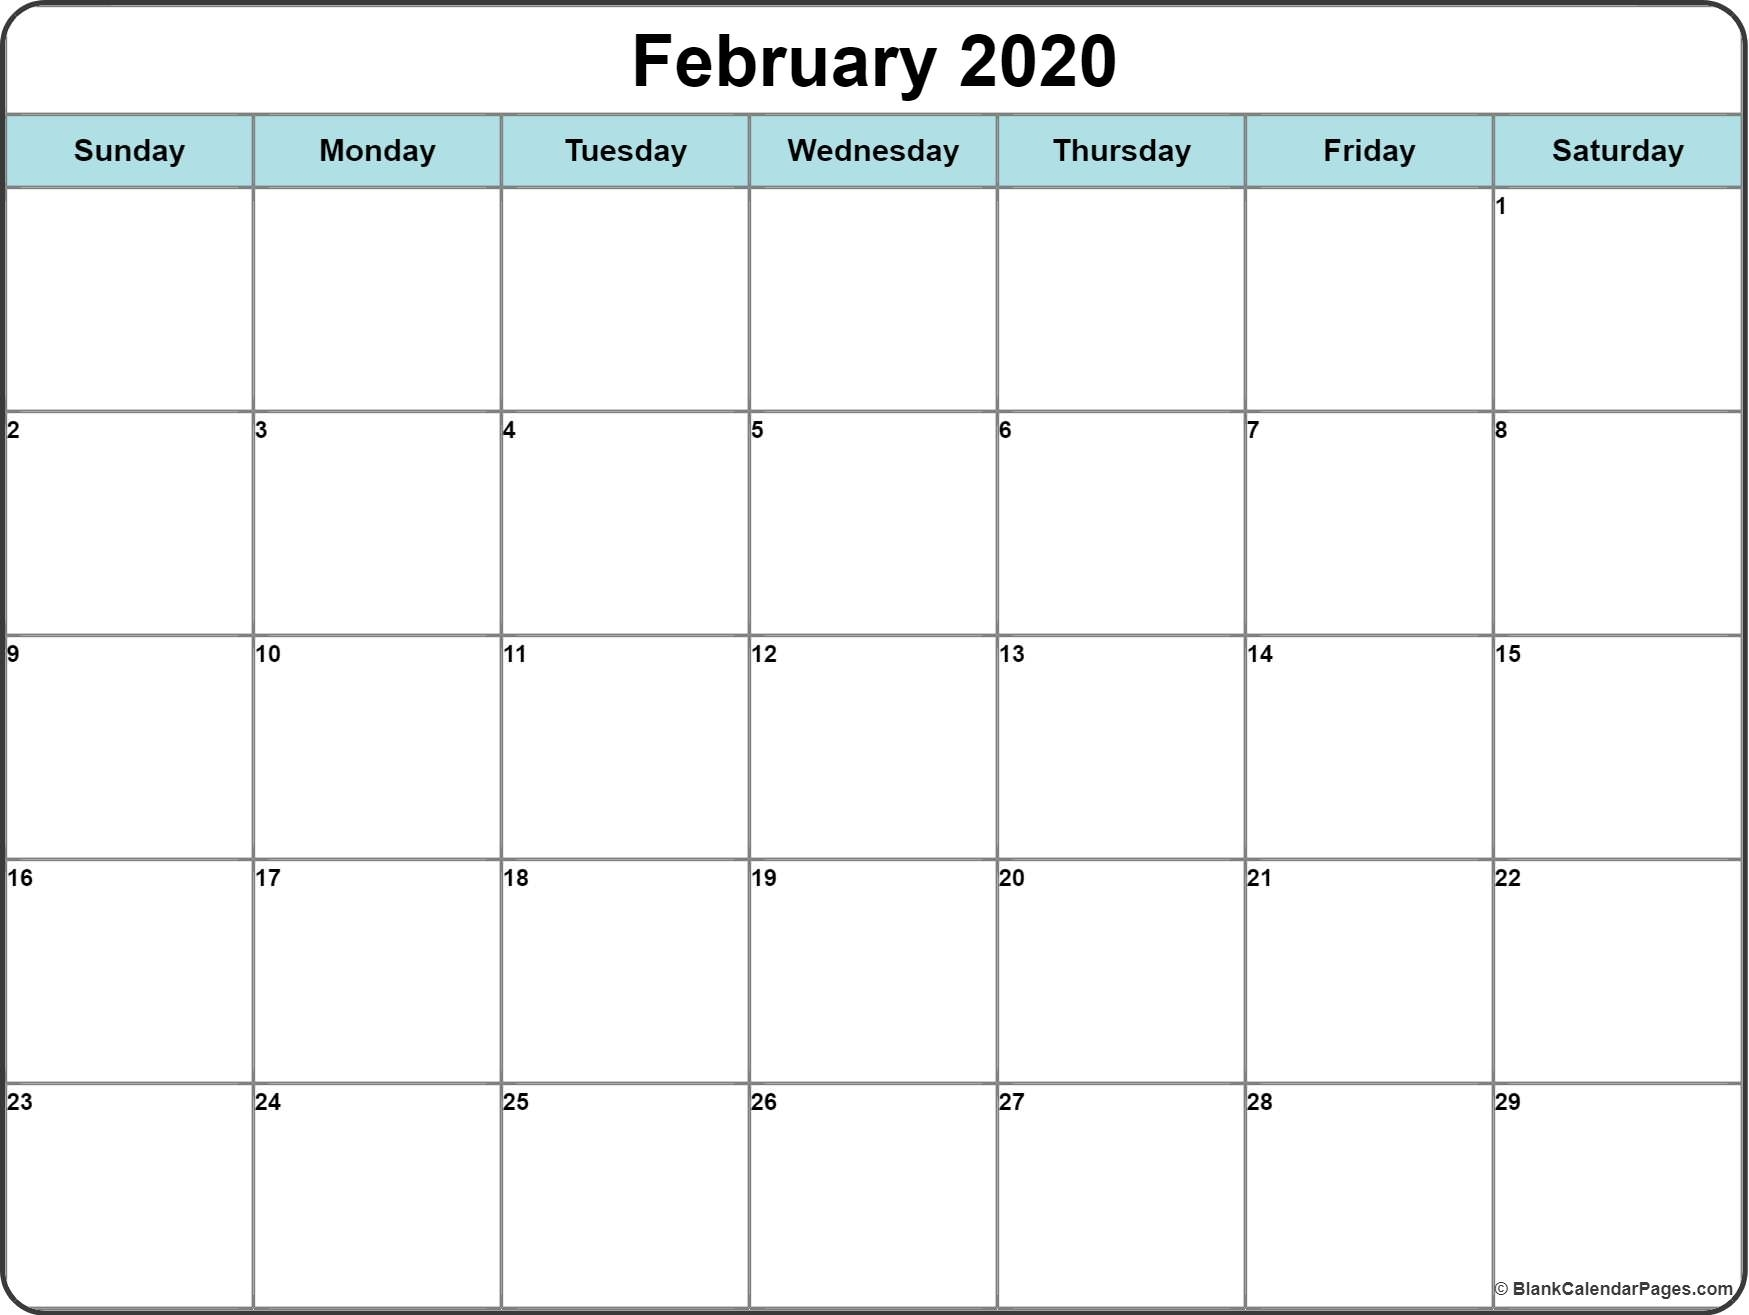 February 2020 Calendar | Free Printable Monthly Calendars inside 2020 Calander To Write On